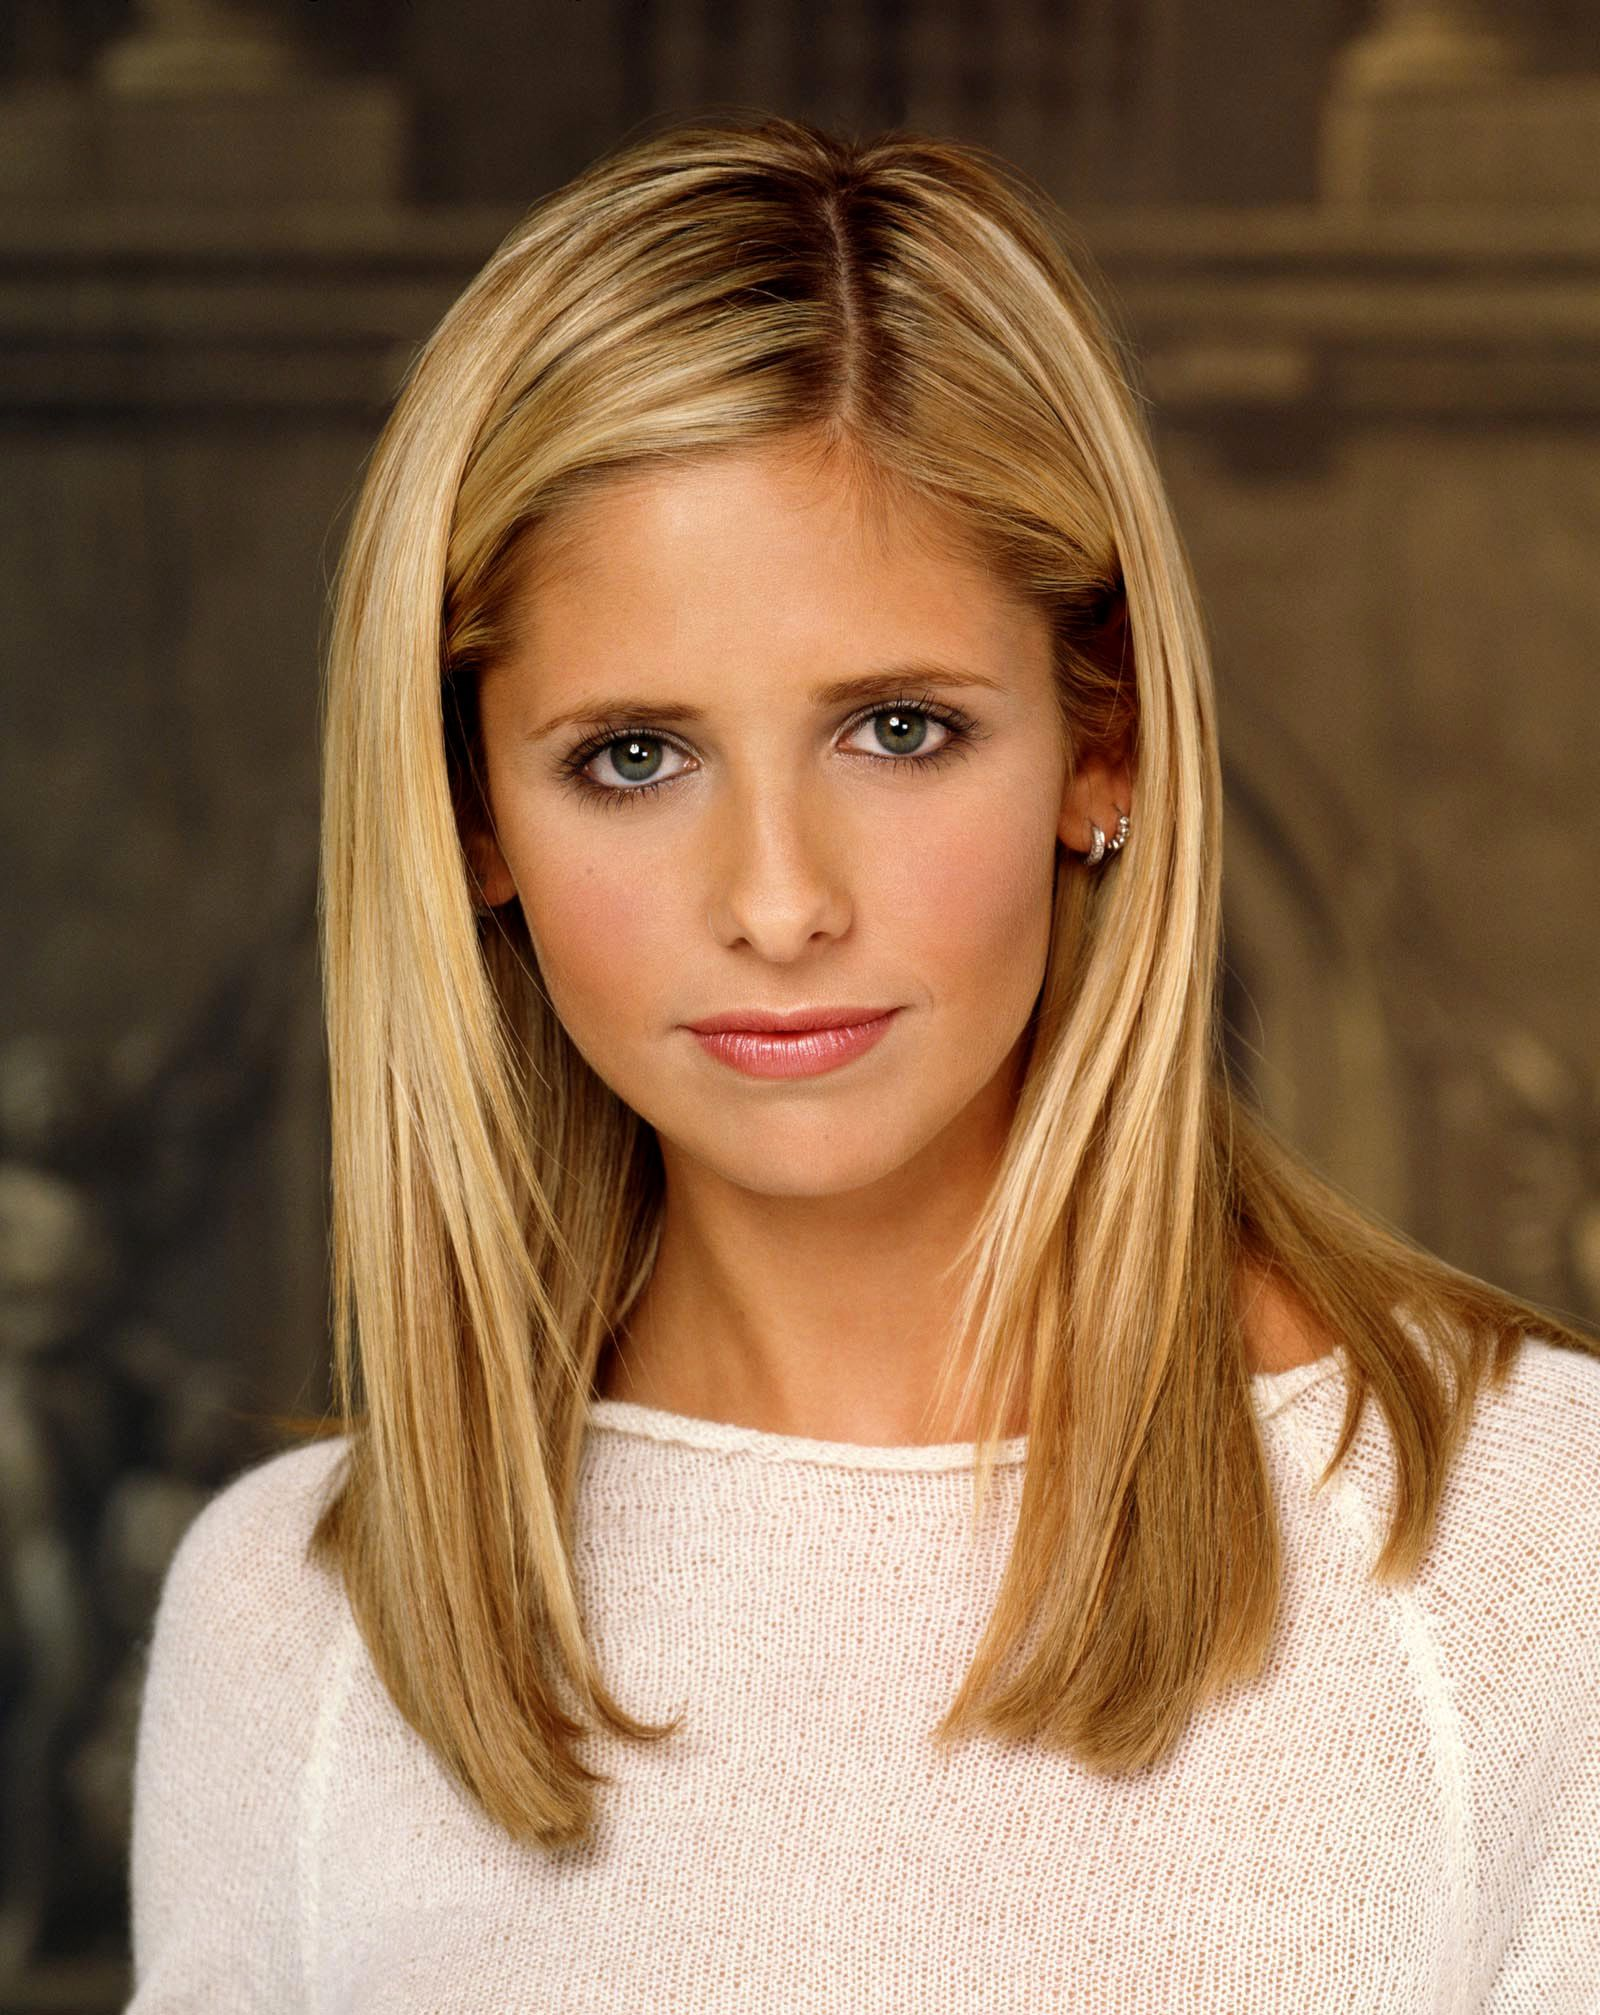 Sarah Michelle Gellar nudes (11 foto), hot Boobs, Instagram, cameltoe 2015